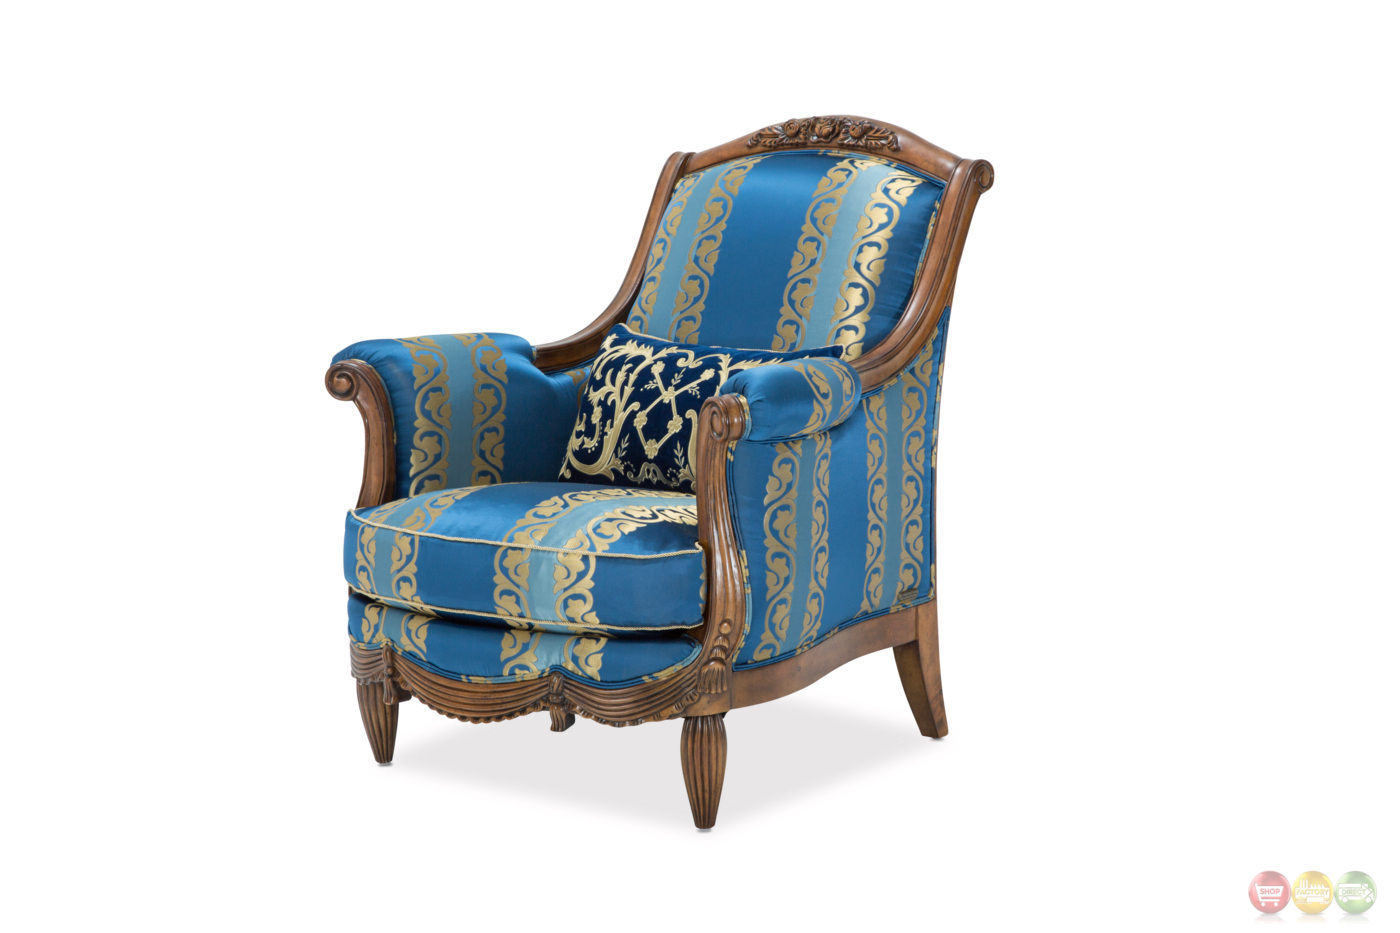 Blue Tufted Chair Adriana Royal Rococo Blue And Beige Button Tufted Chair In